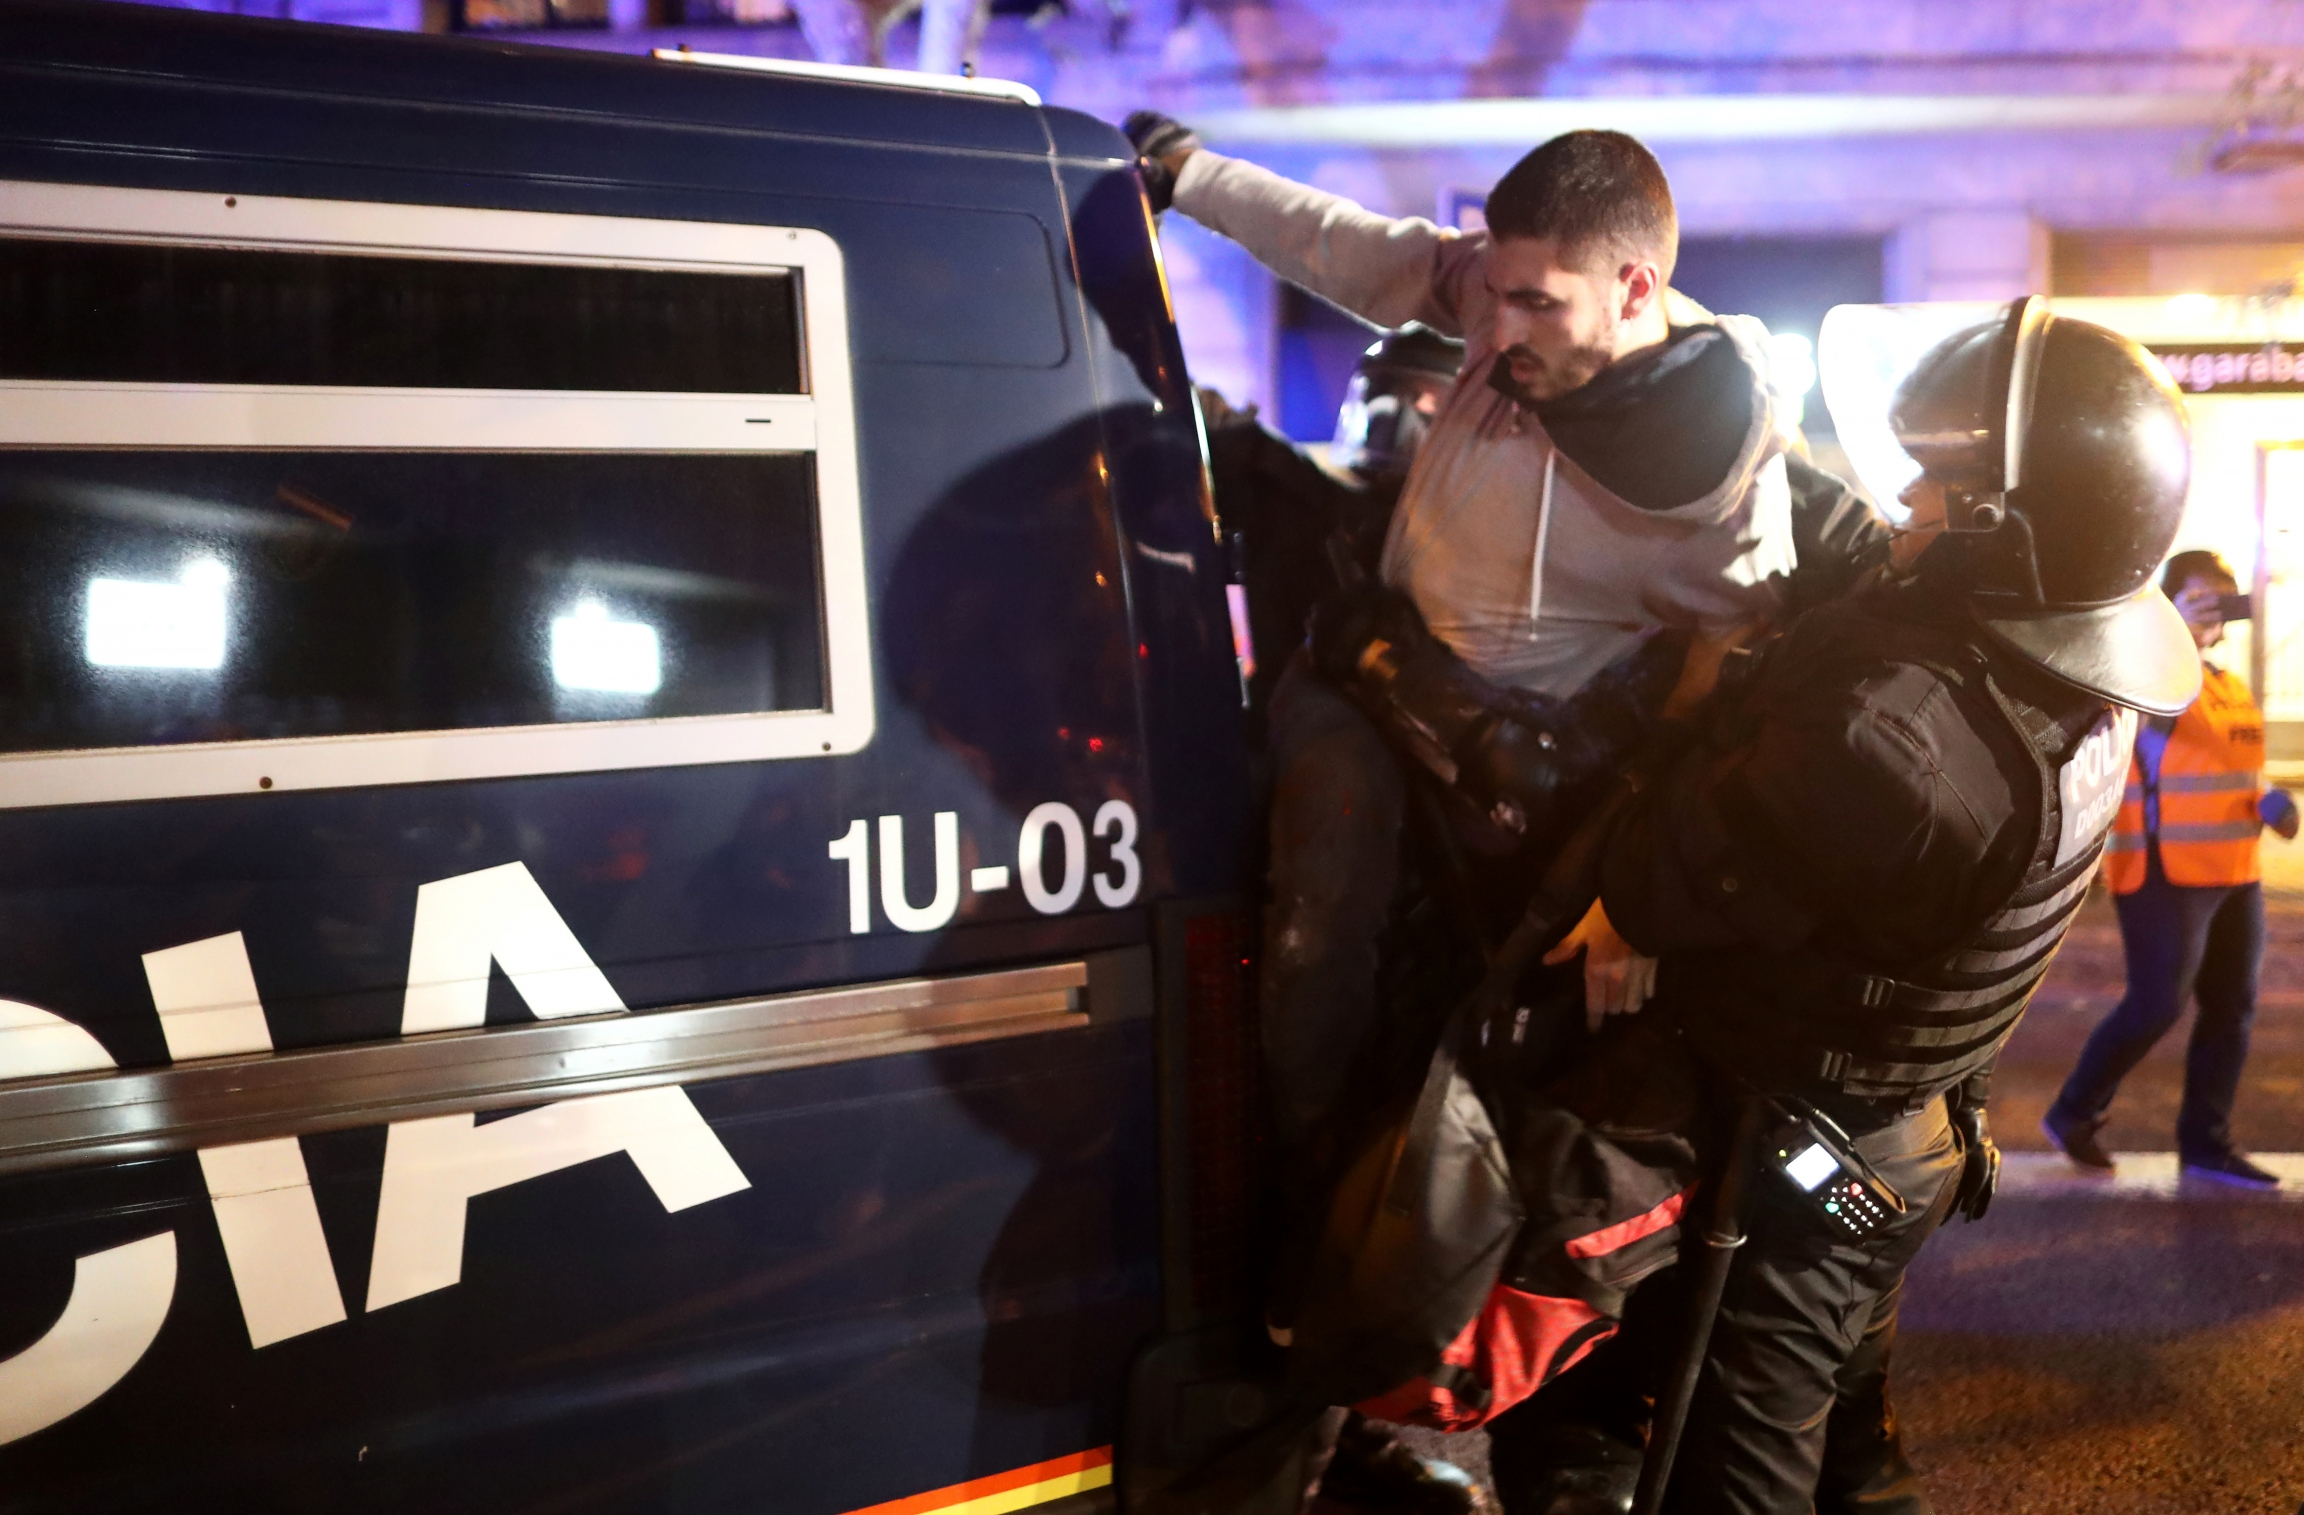 protester detained by police in riot gear